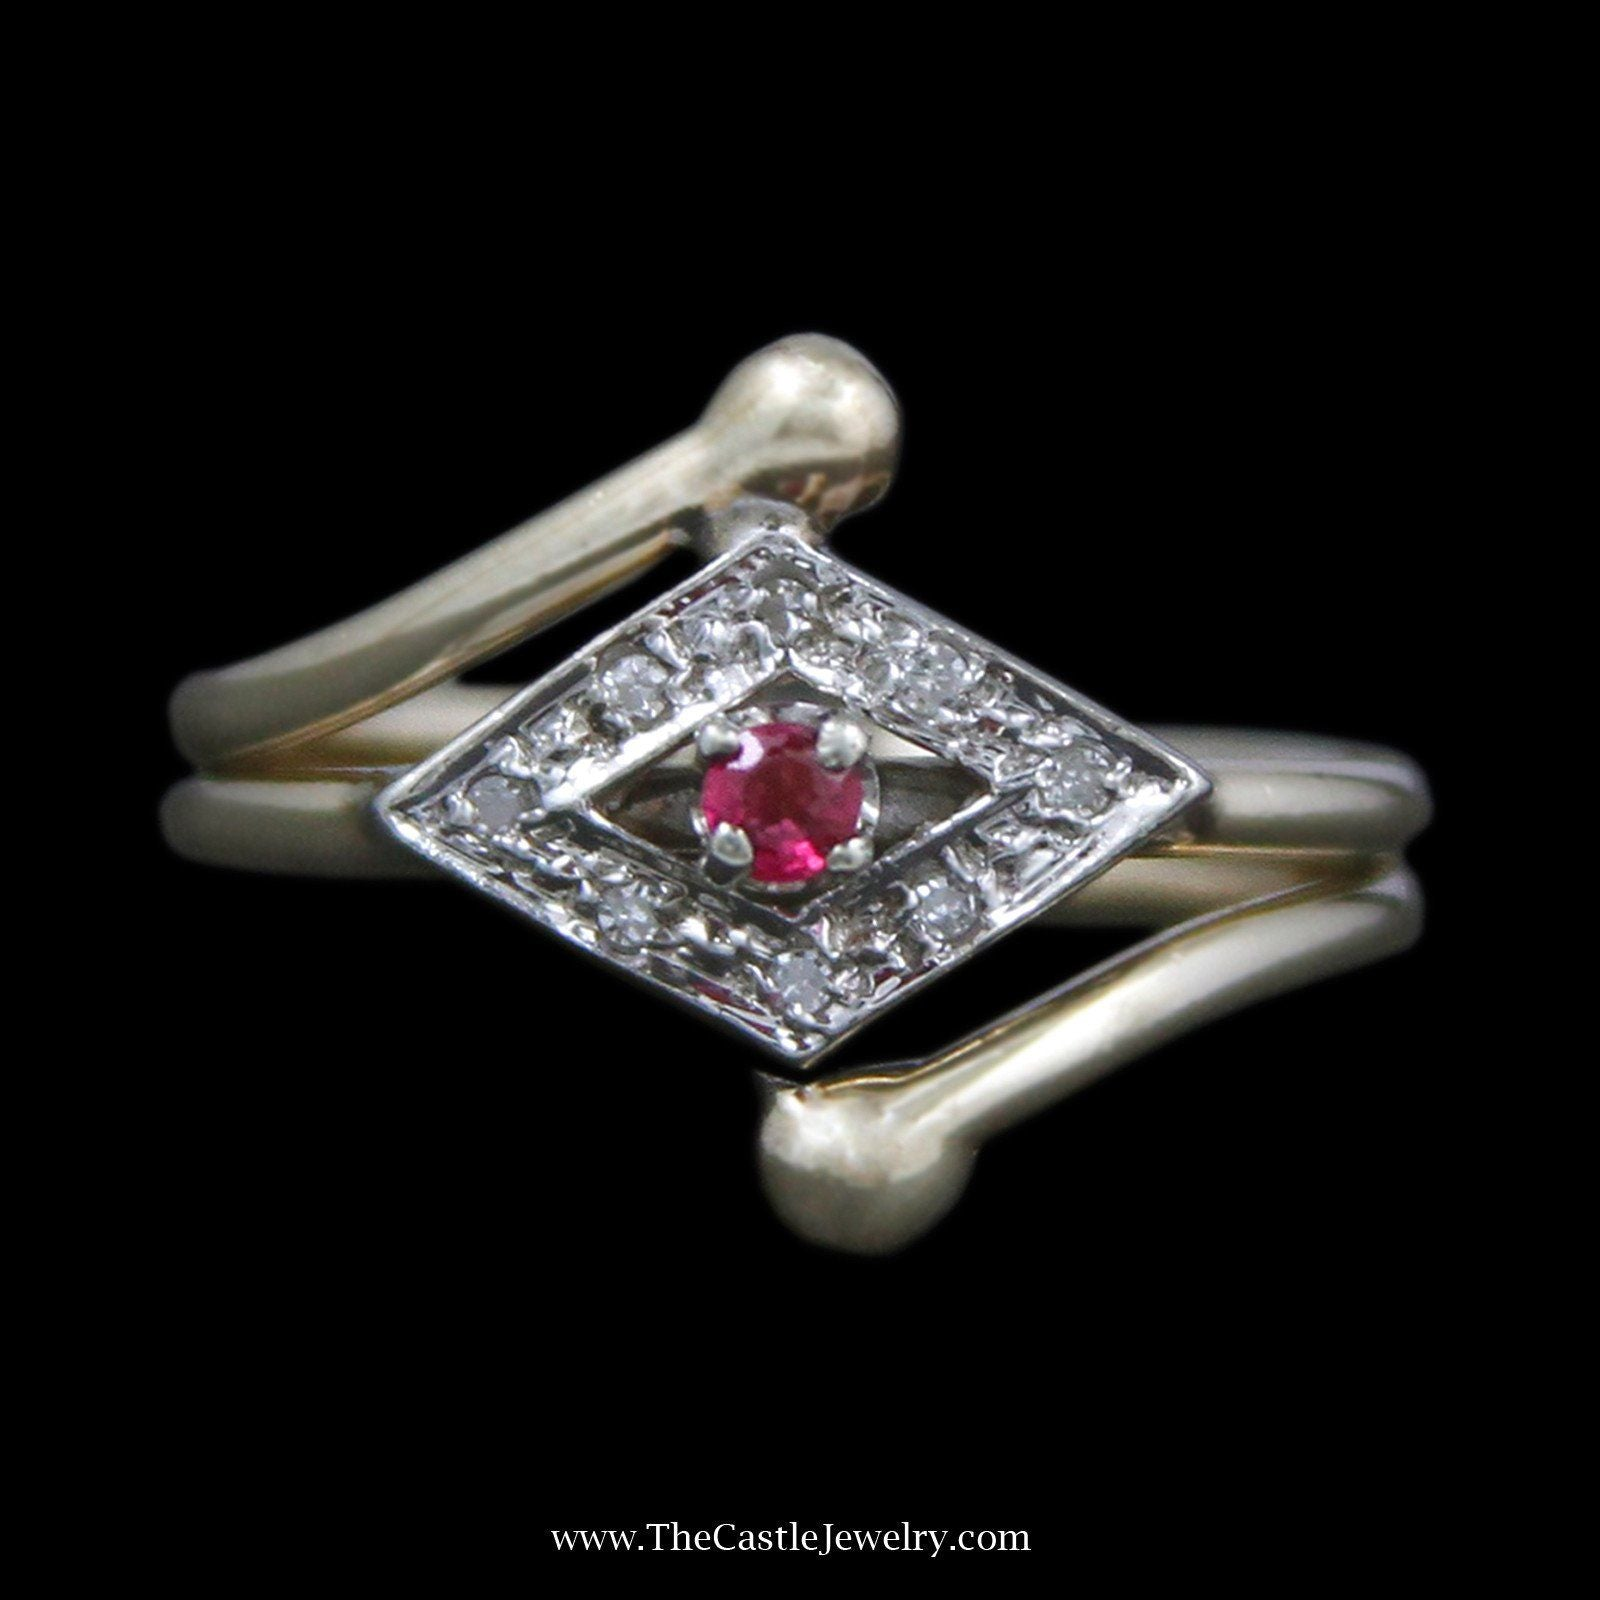 Unique Round Ruby Ring with Sideways Diamond Bezel with Round Diamonds-0